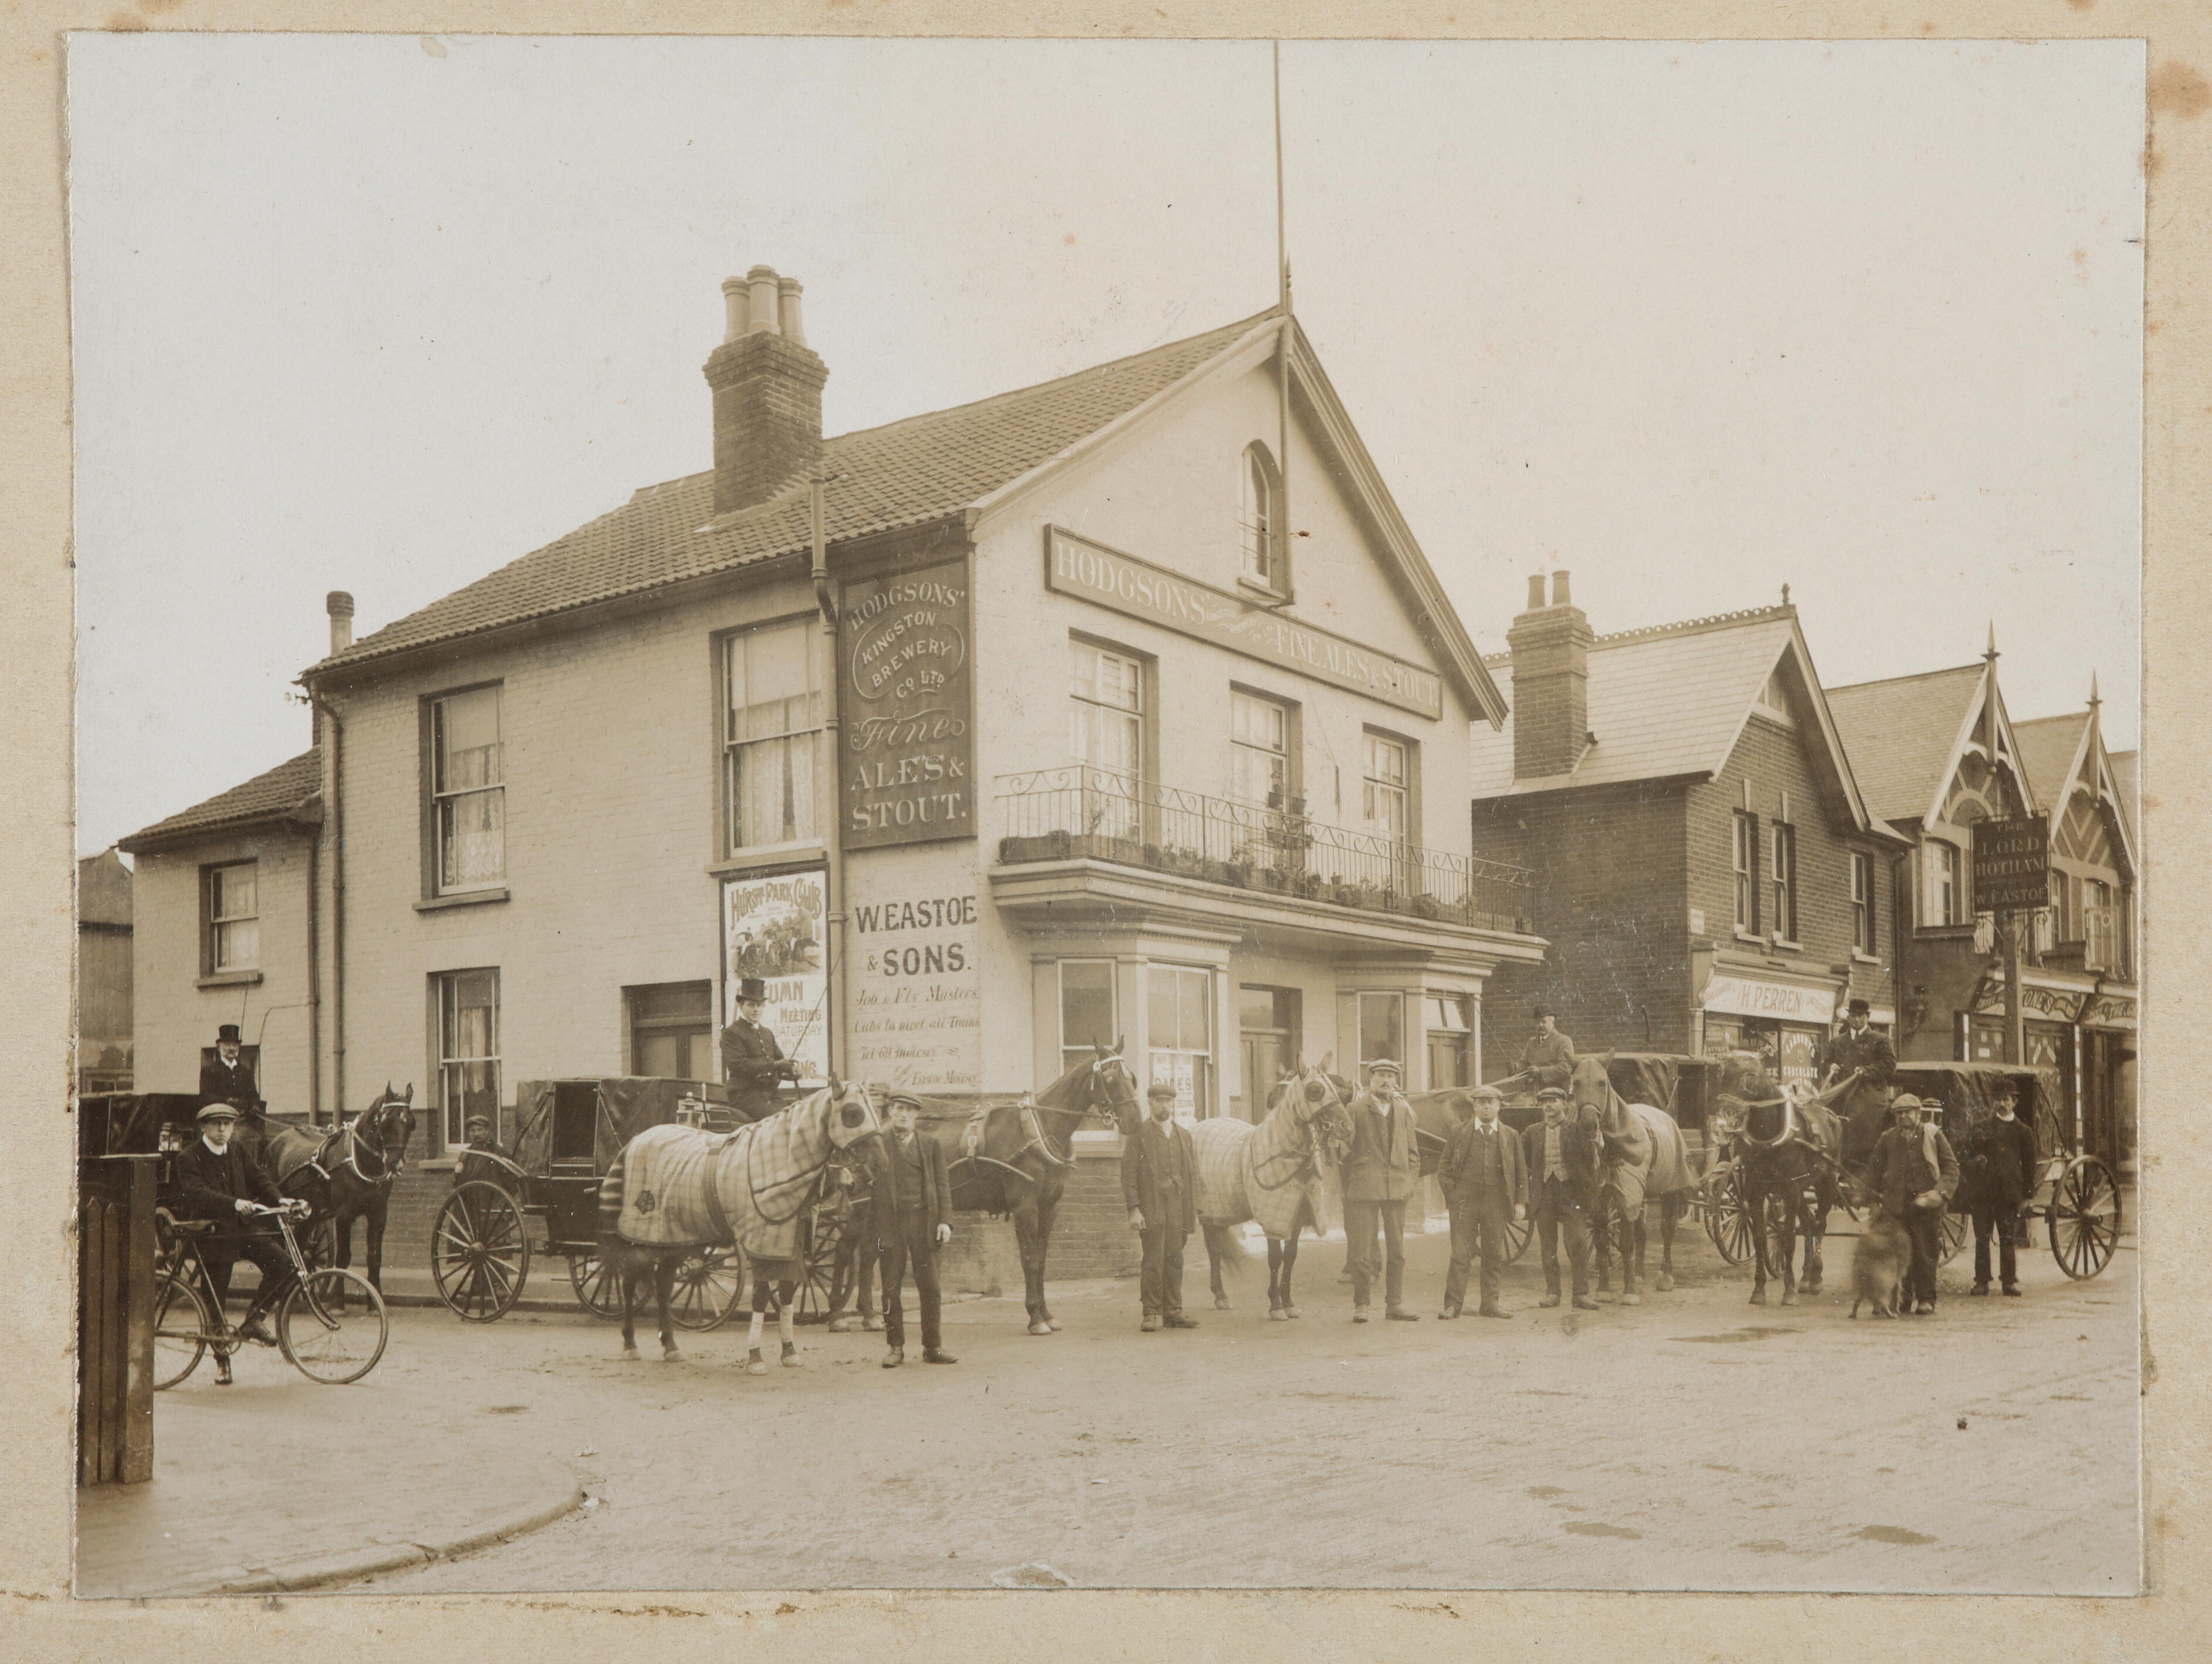 Photo of advert for Hurst Park meeting at Lord Hotham pub, 1910.